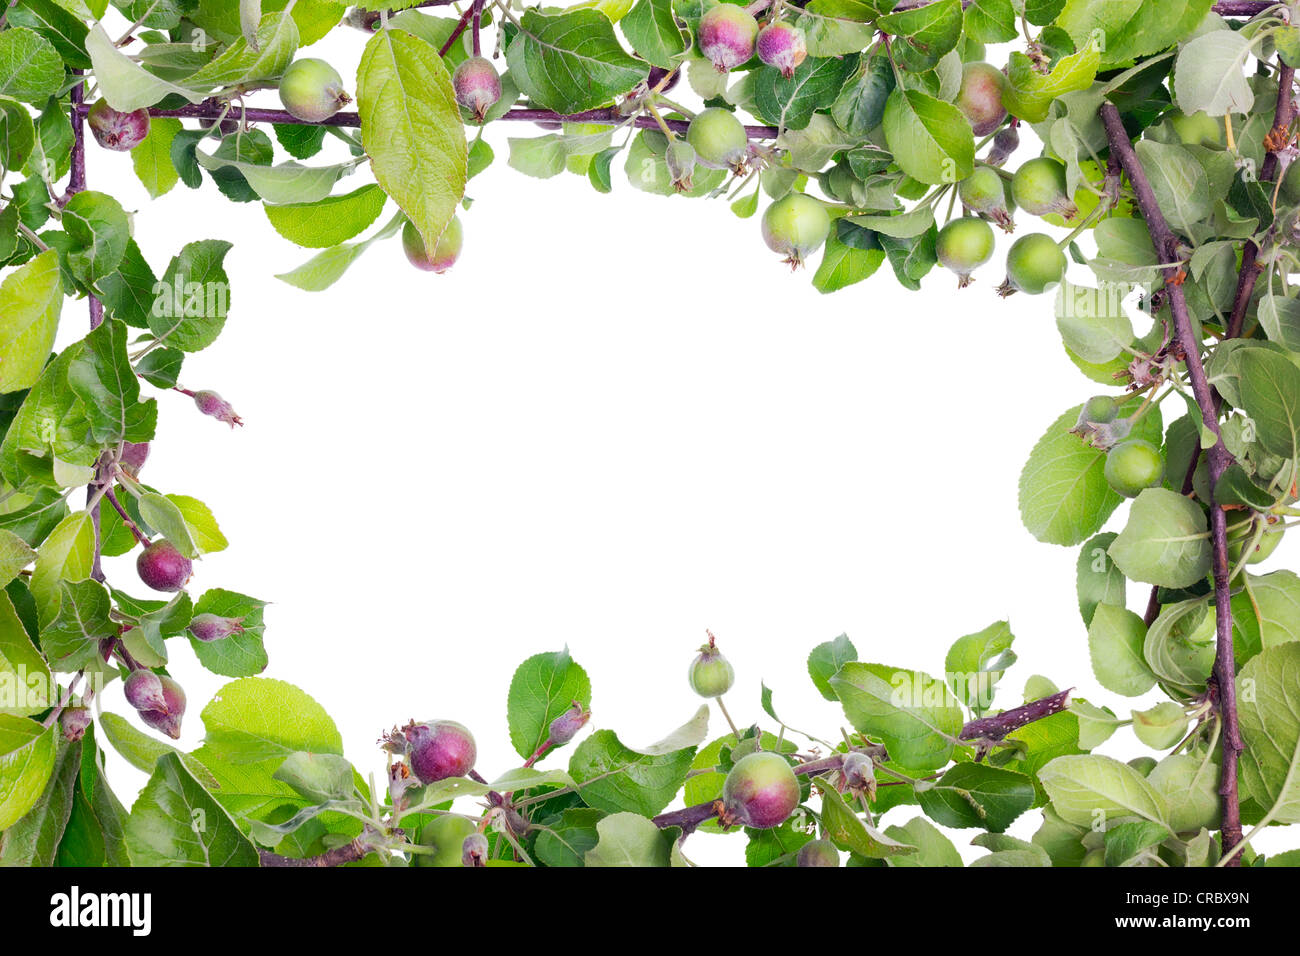 Isolated frame from real apple twigs with leaves and unripe green red fruits. Environmental apples grow without - Stock Image